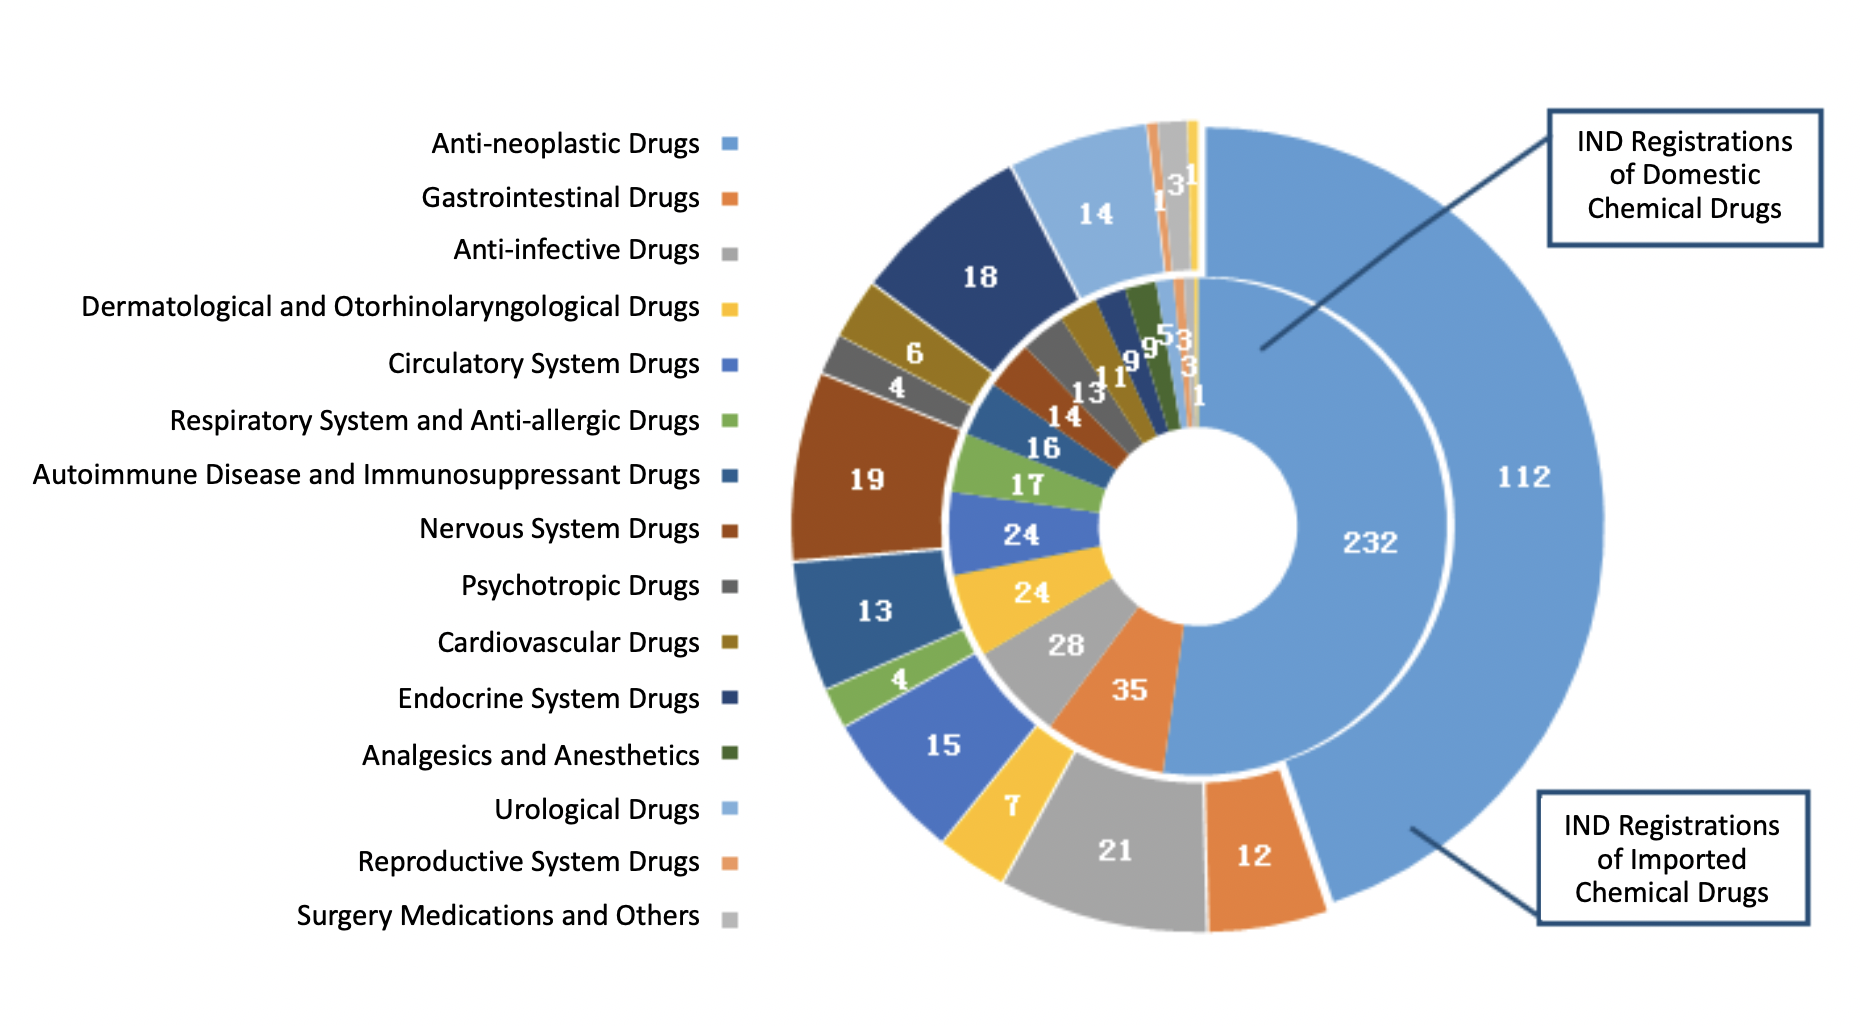 Fig. 5 Number of IND Registrations for Different Indications of Chemical Drugs in 2019